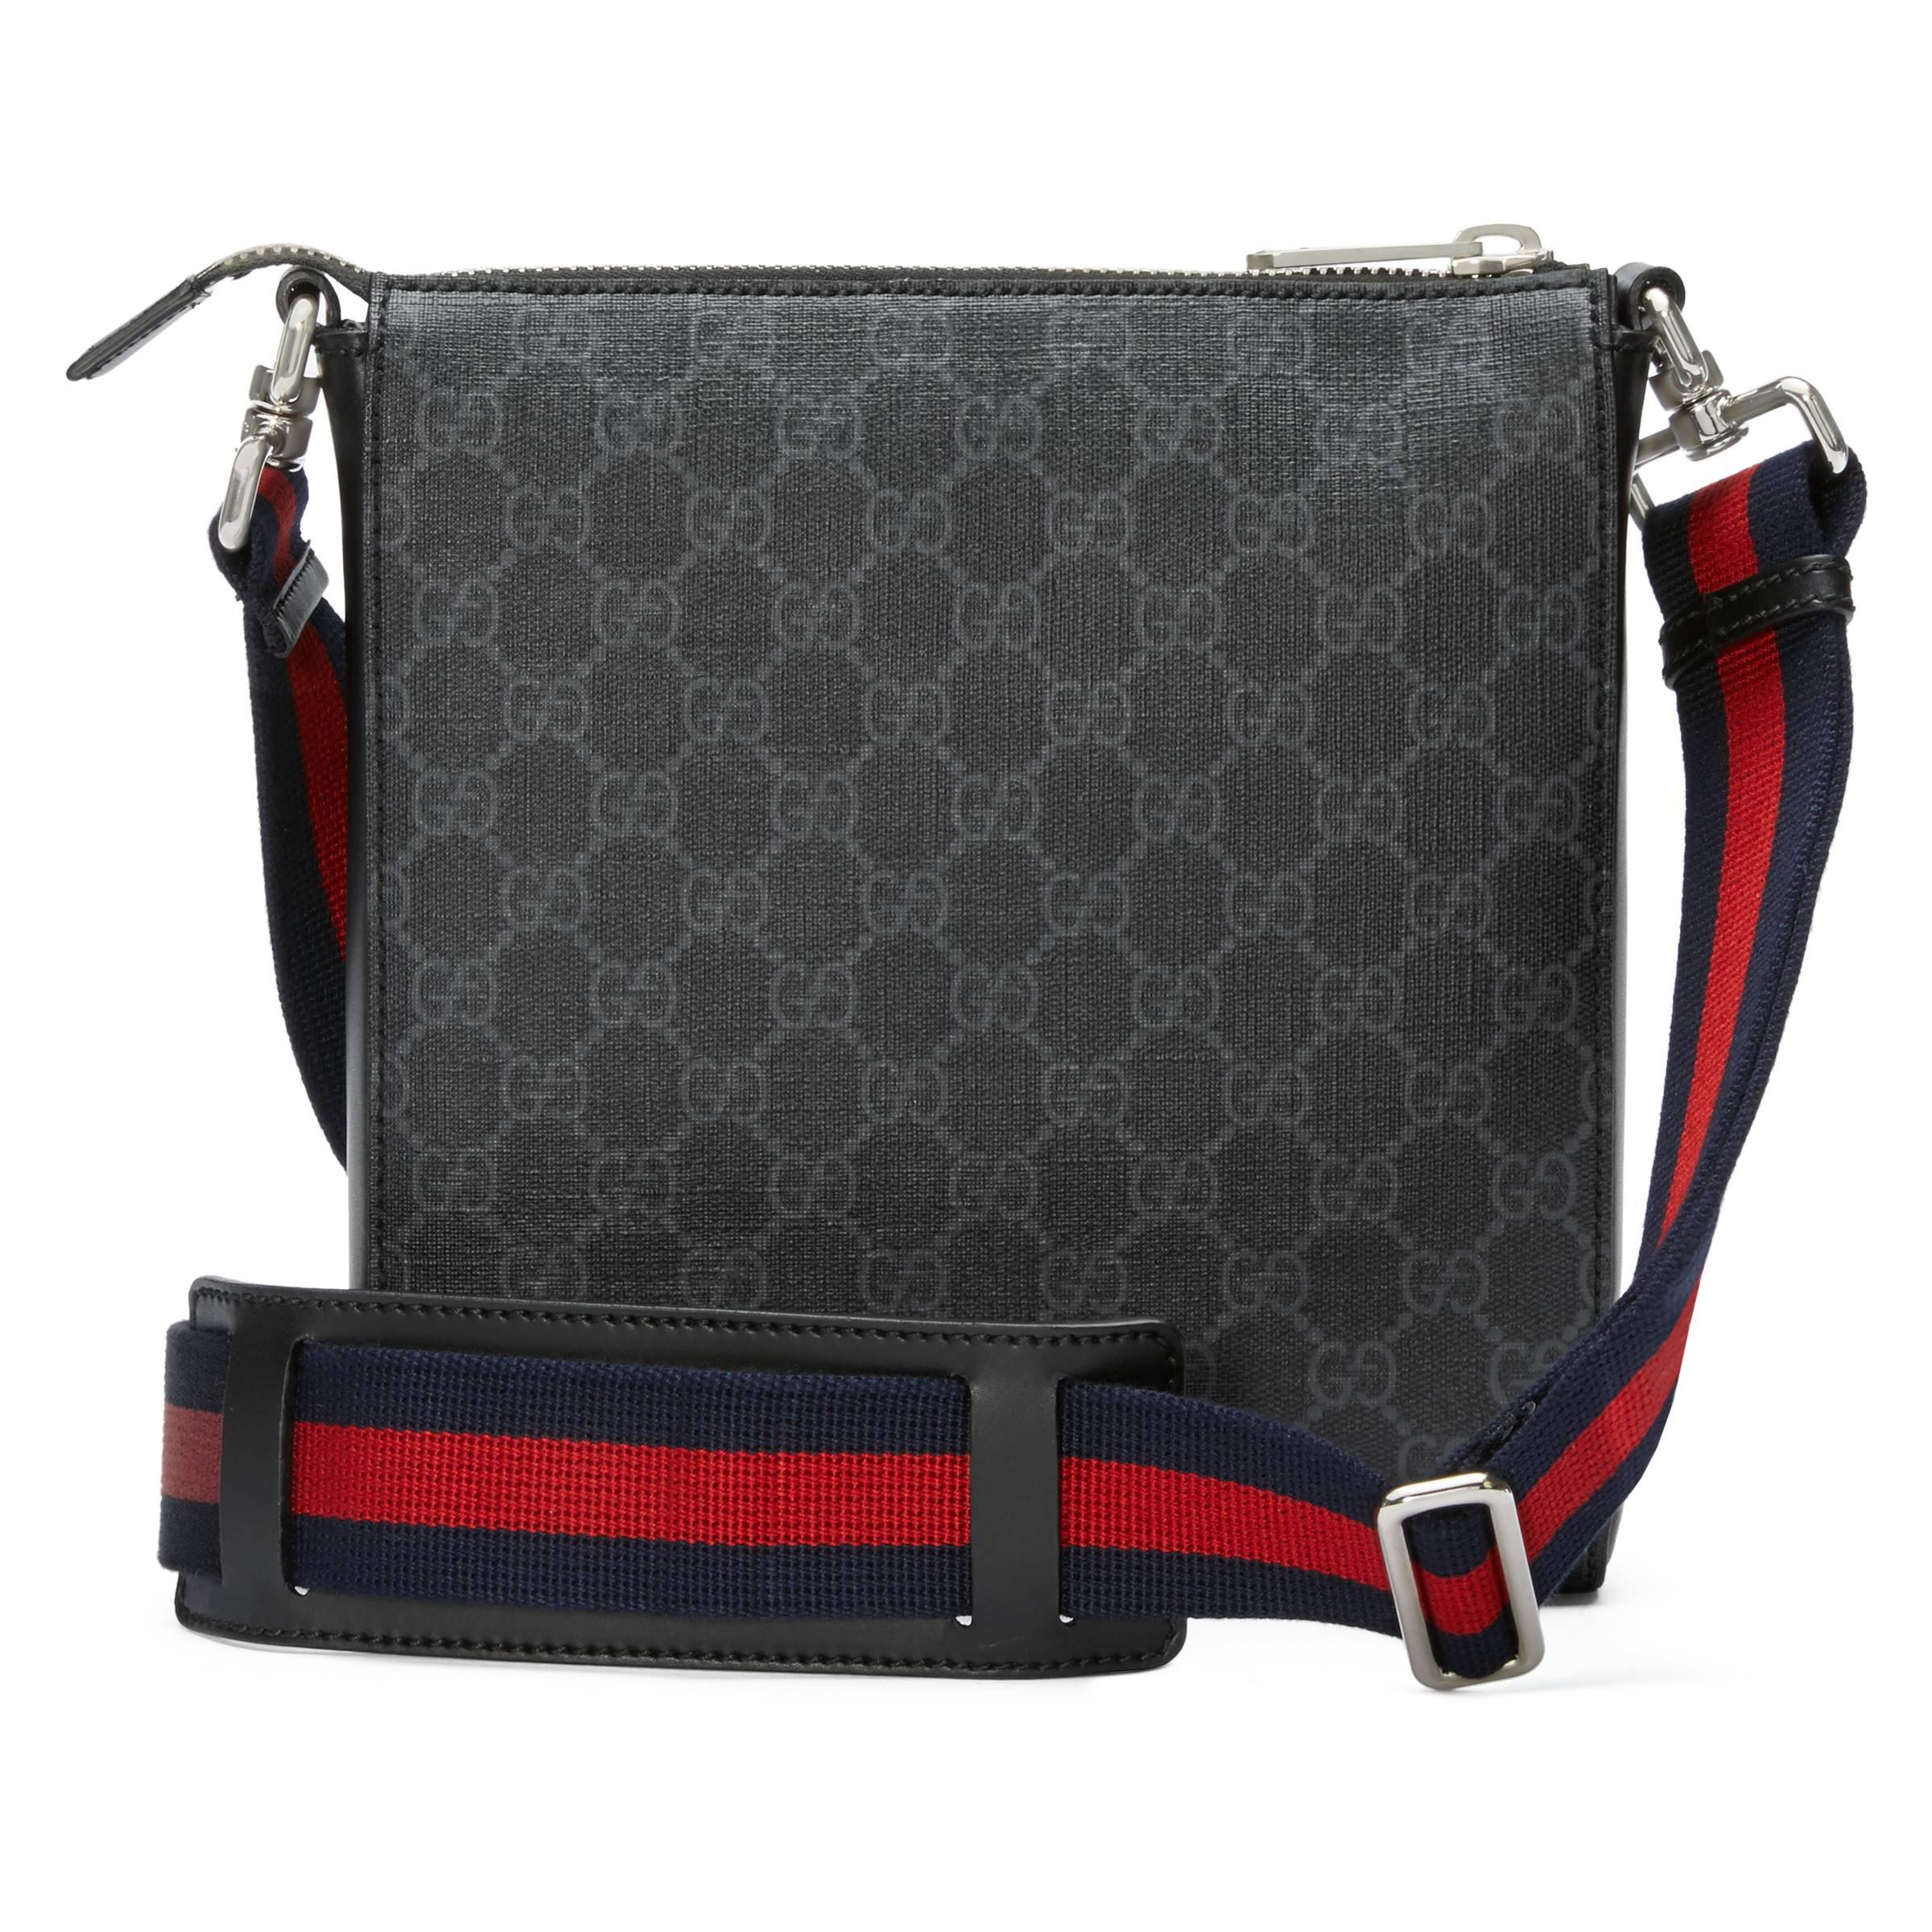 d1f014fb59f1 Gucci - Black Night Courrier GG Supreme Messenger for Men - Lyst. View  fullscreen